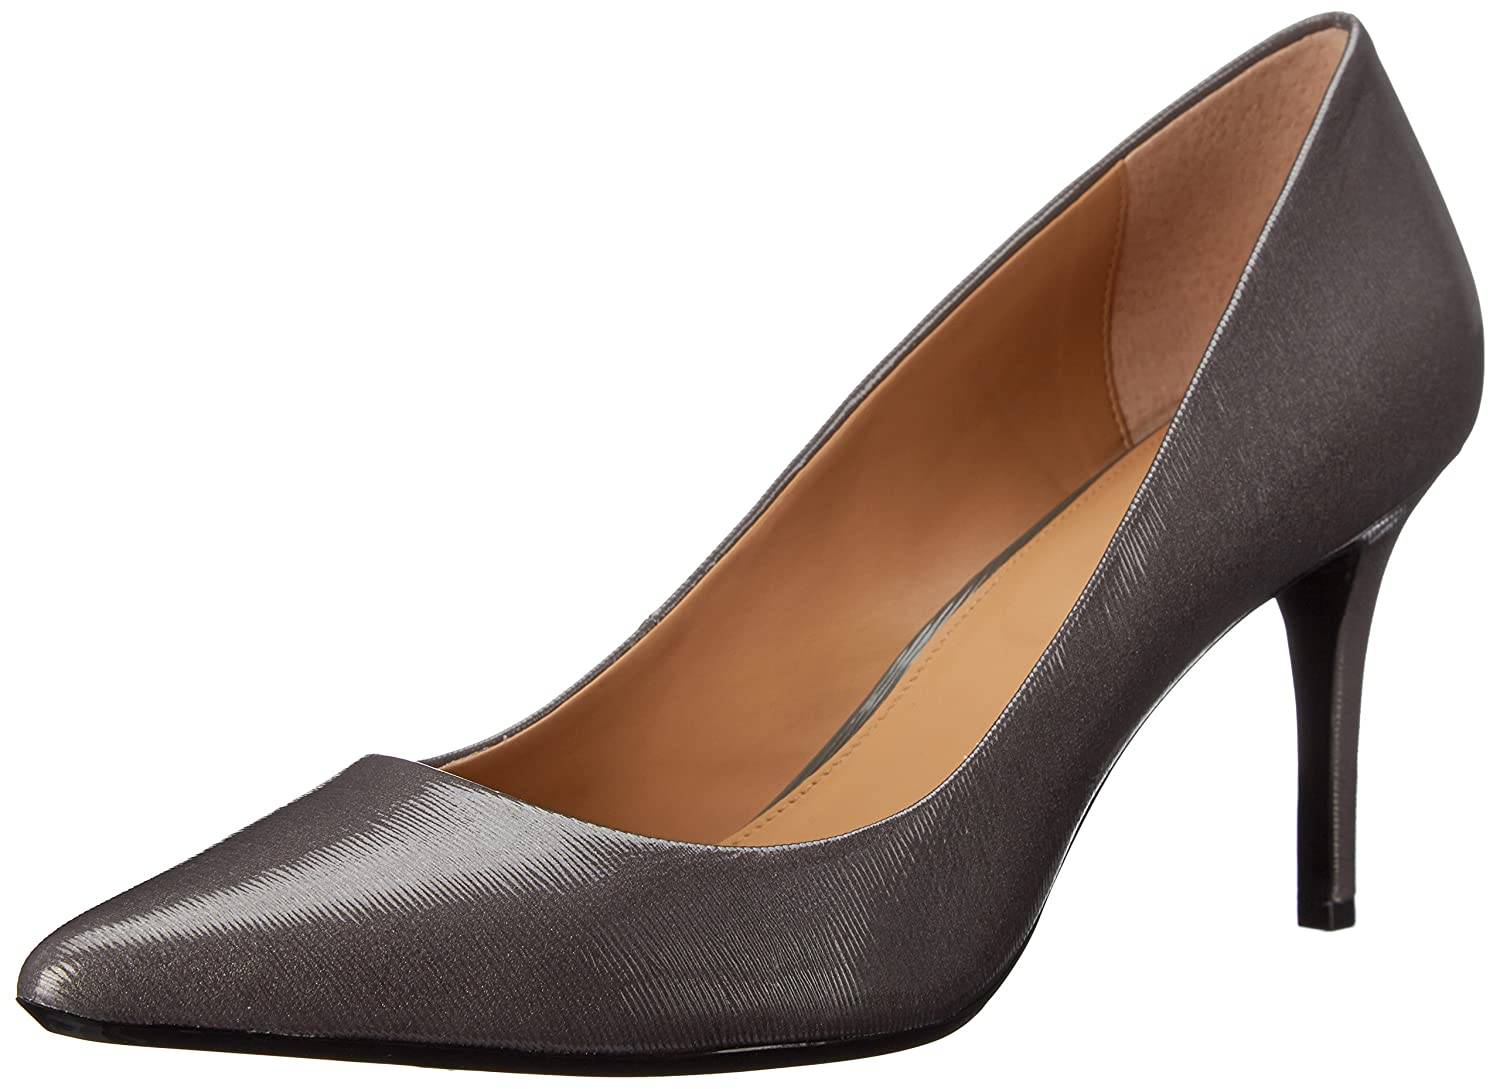 Calvin Klein Women's Gayle Pump B00X554ZIK 5 B(M) US|Shadow Grey